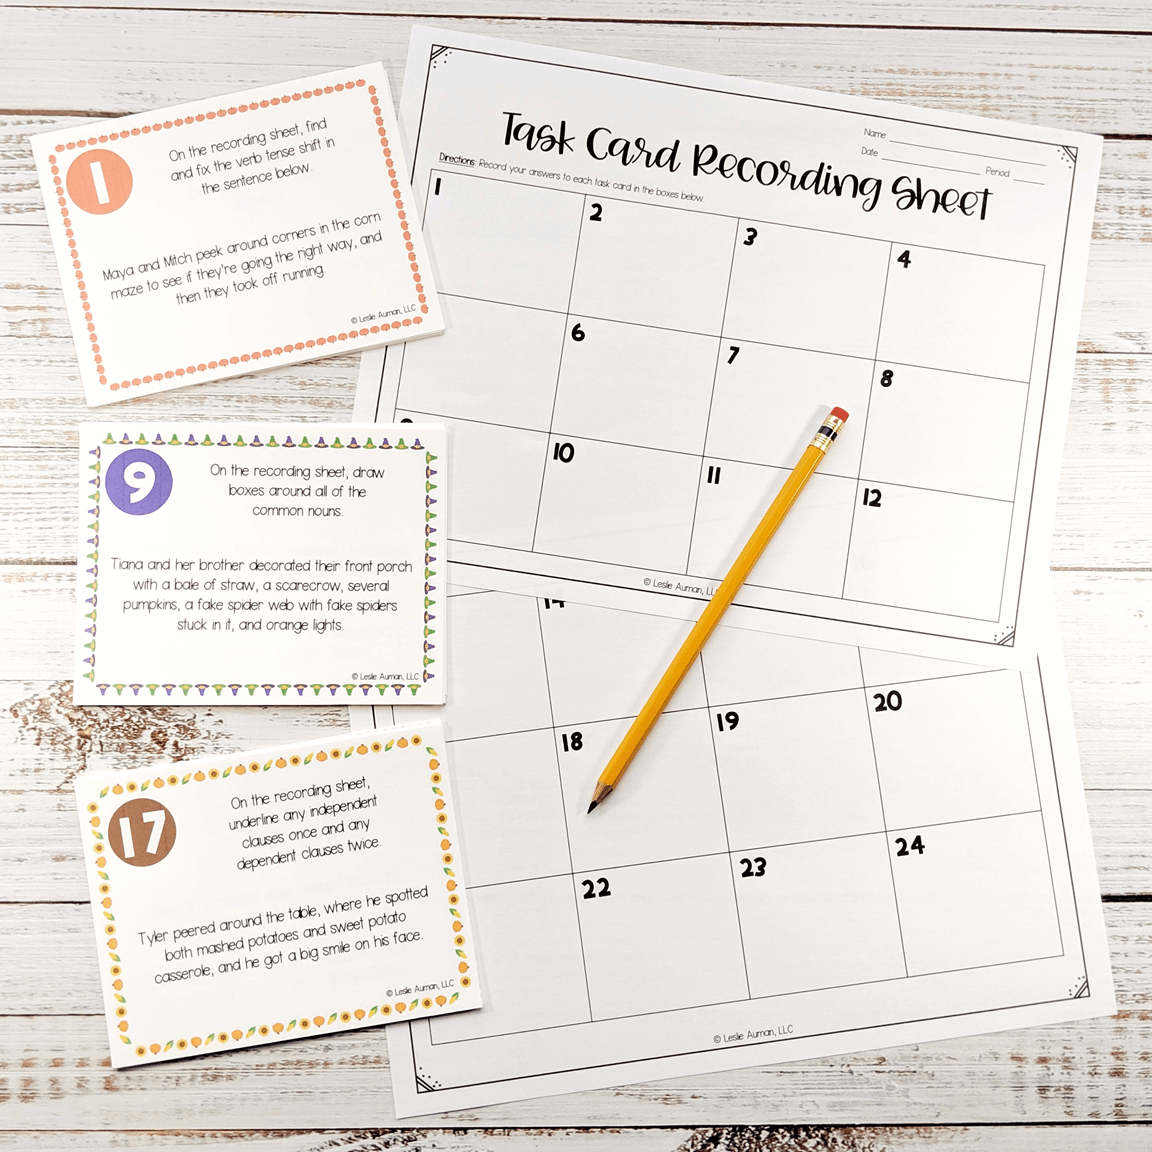 This is a photograph of a free set of fall grammar task cards, along with a recording sheet for answers and a pencil.